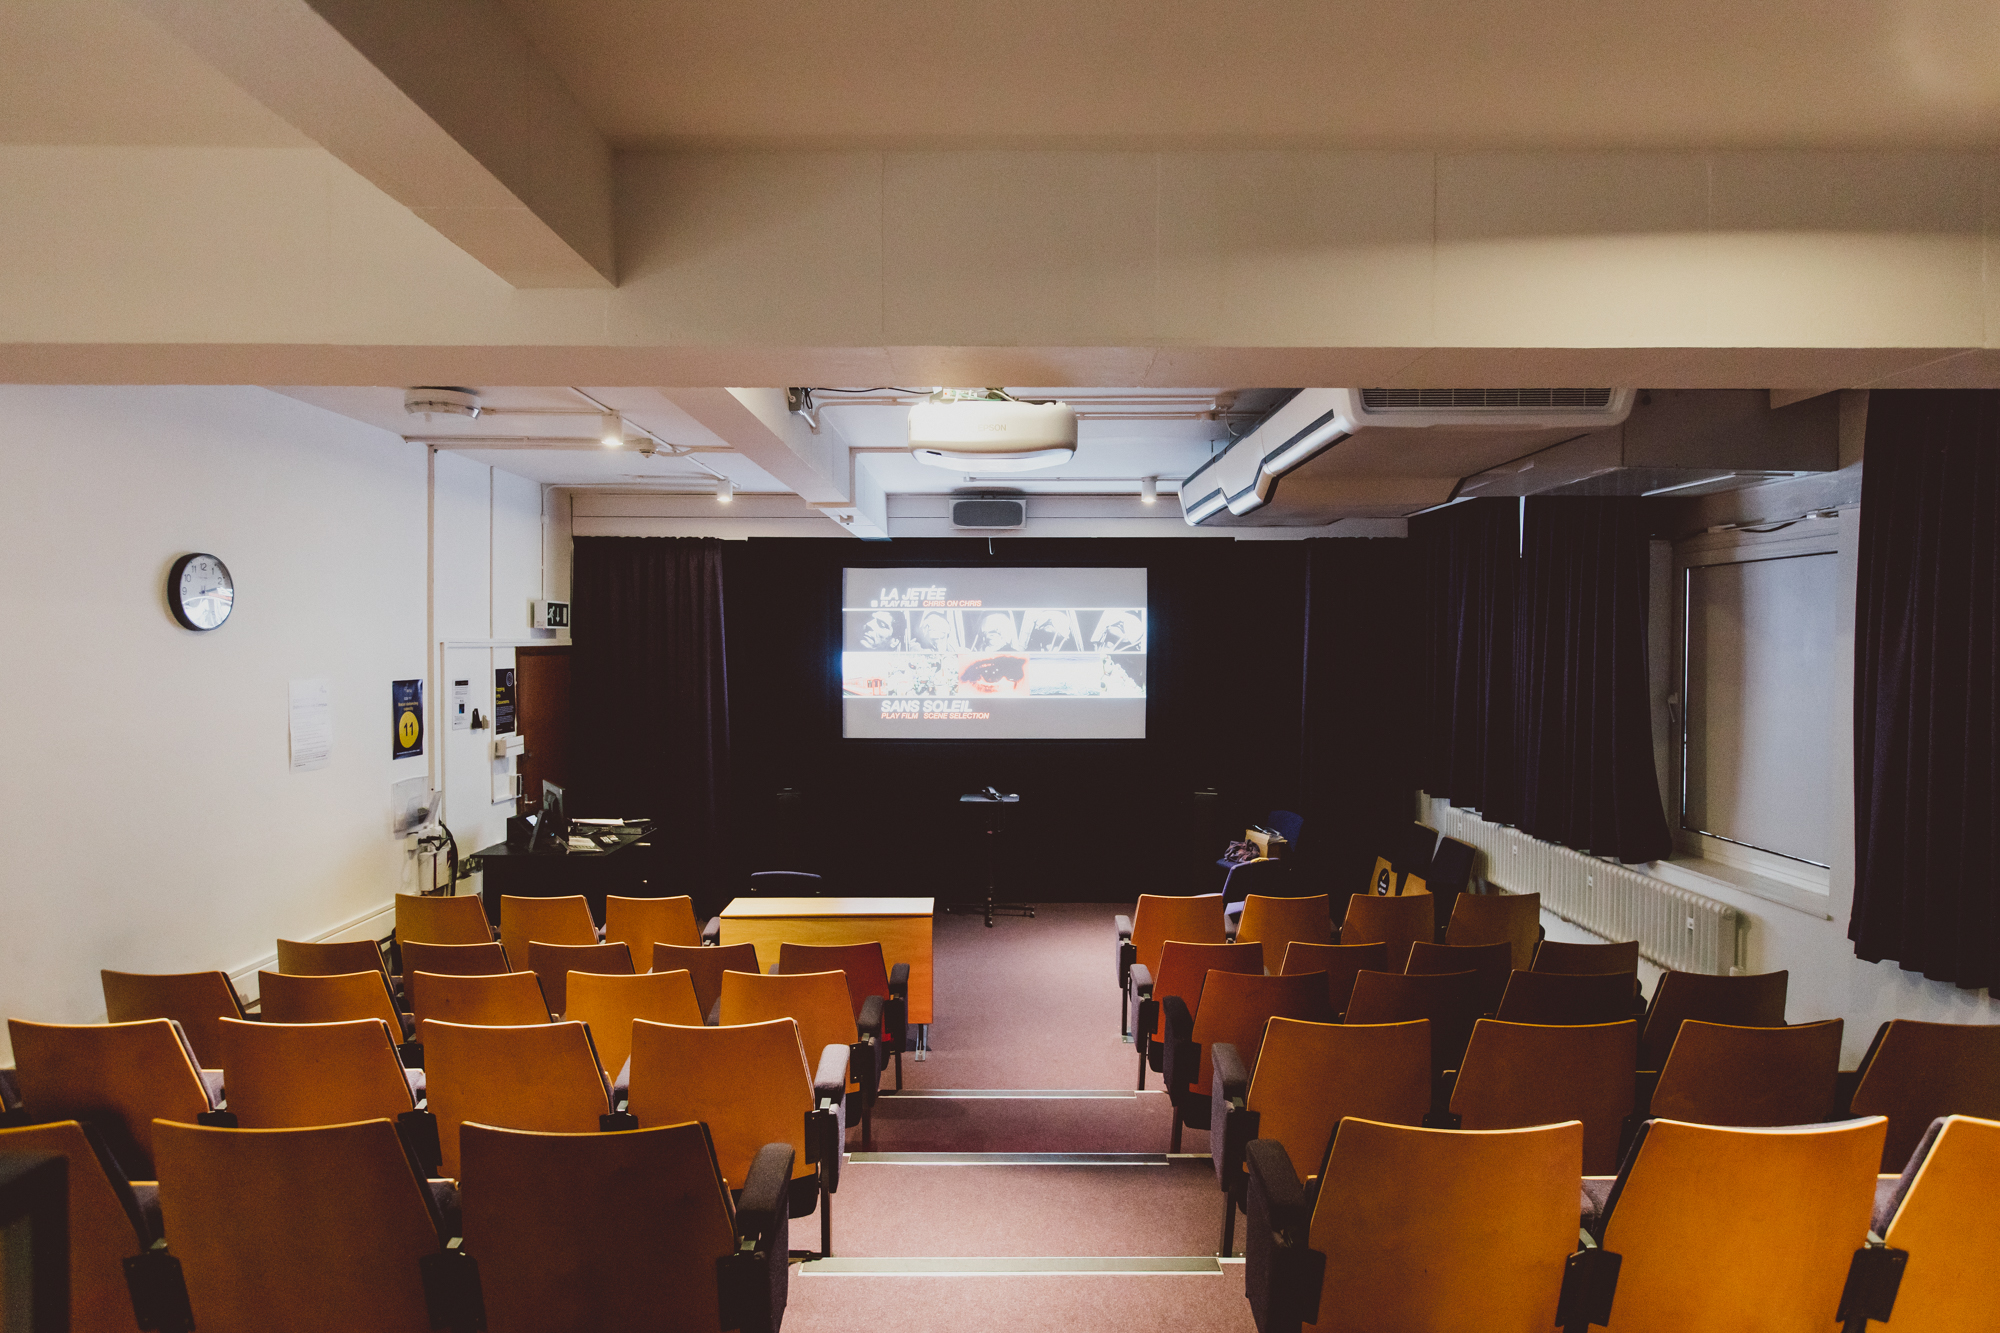 Seats and screen in screening room